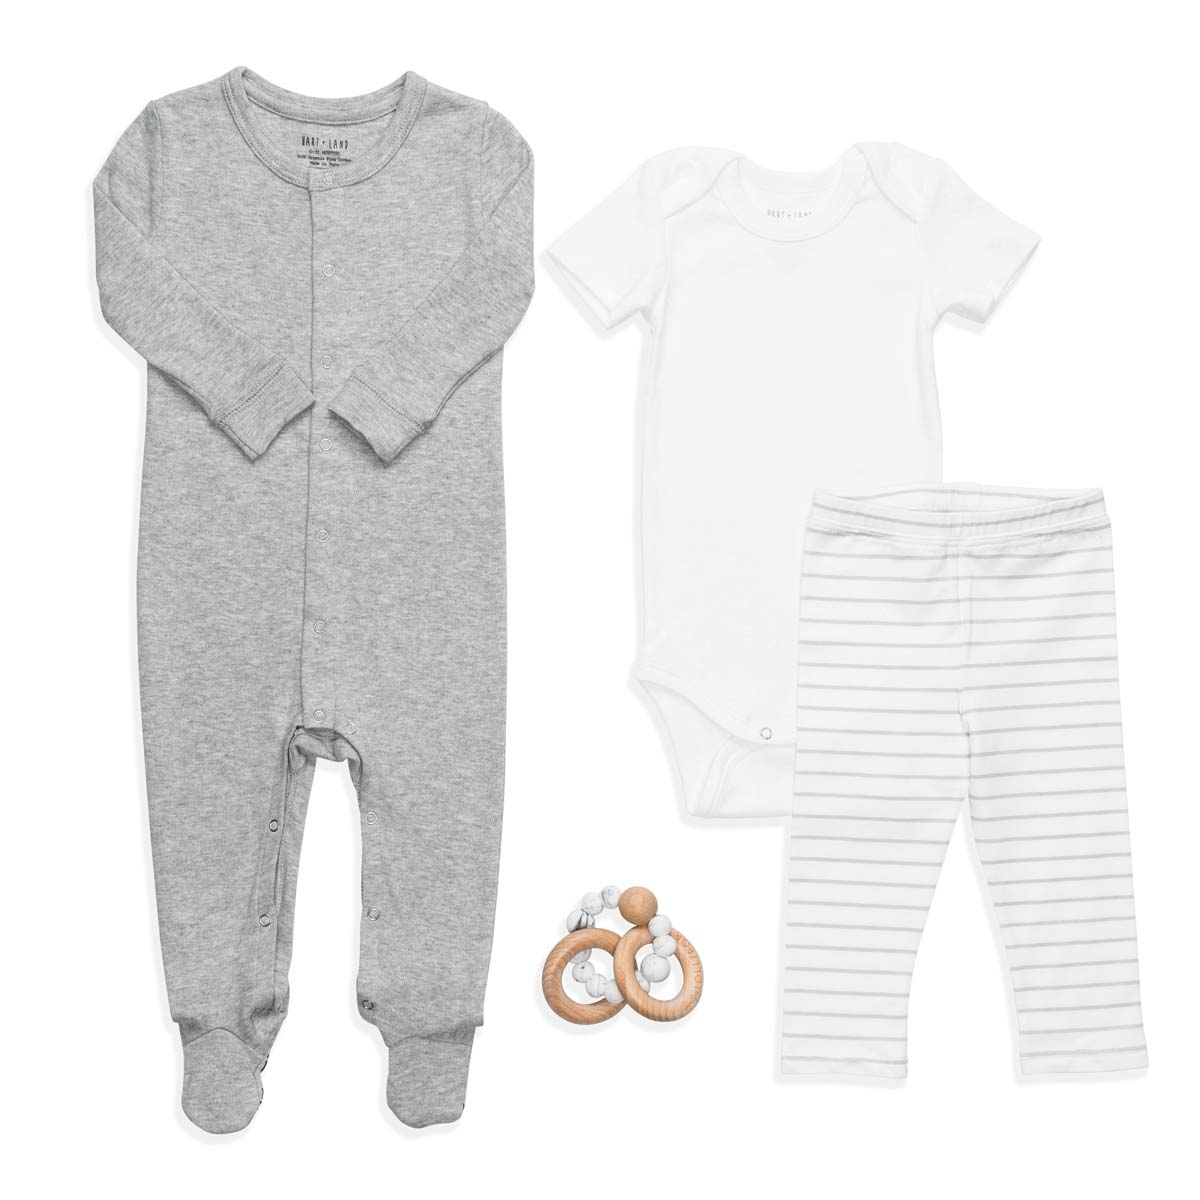 Hart + Land $100 Gift Set in Micro Chip Grey